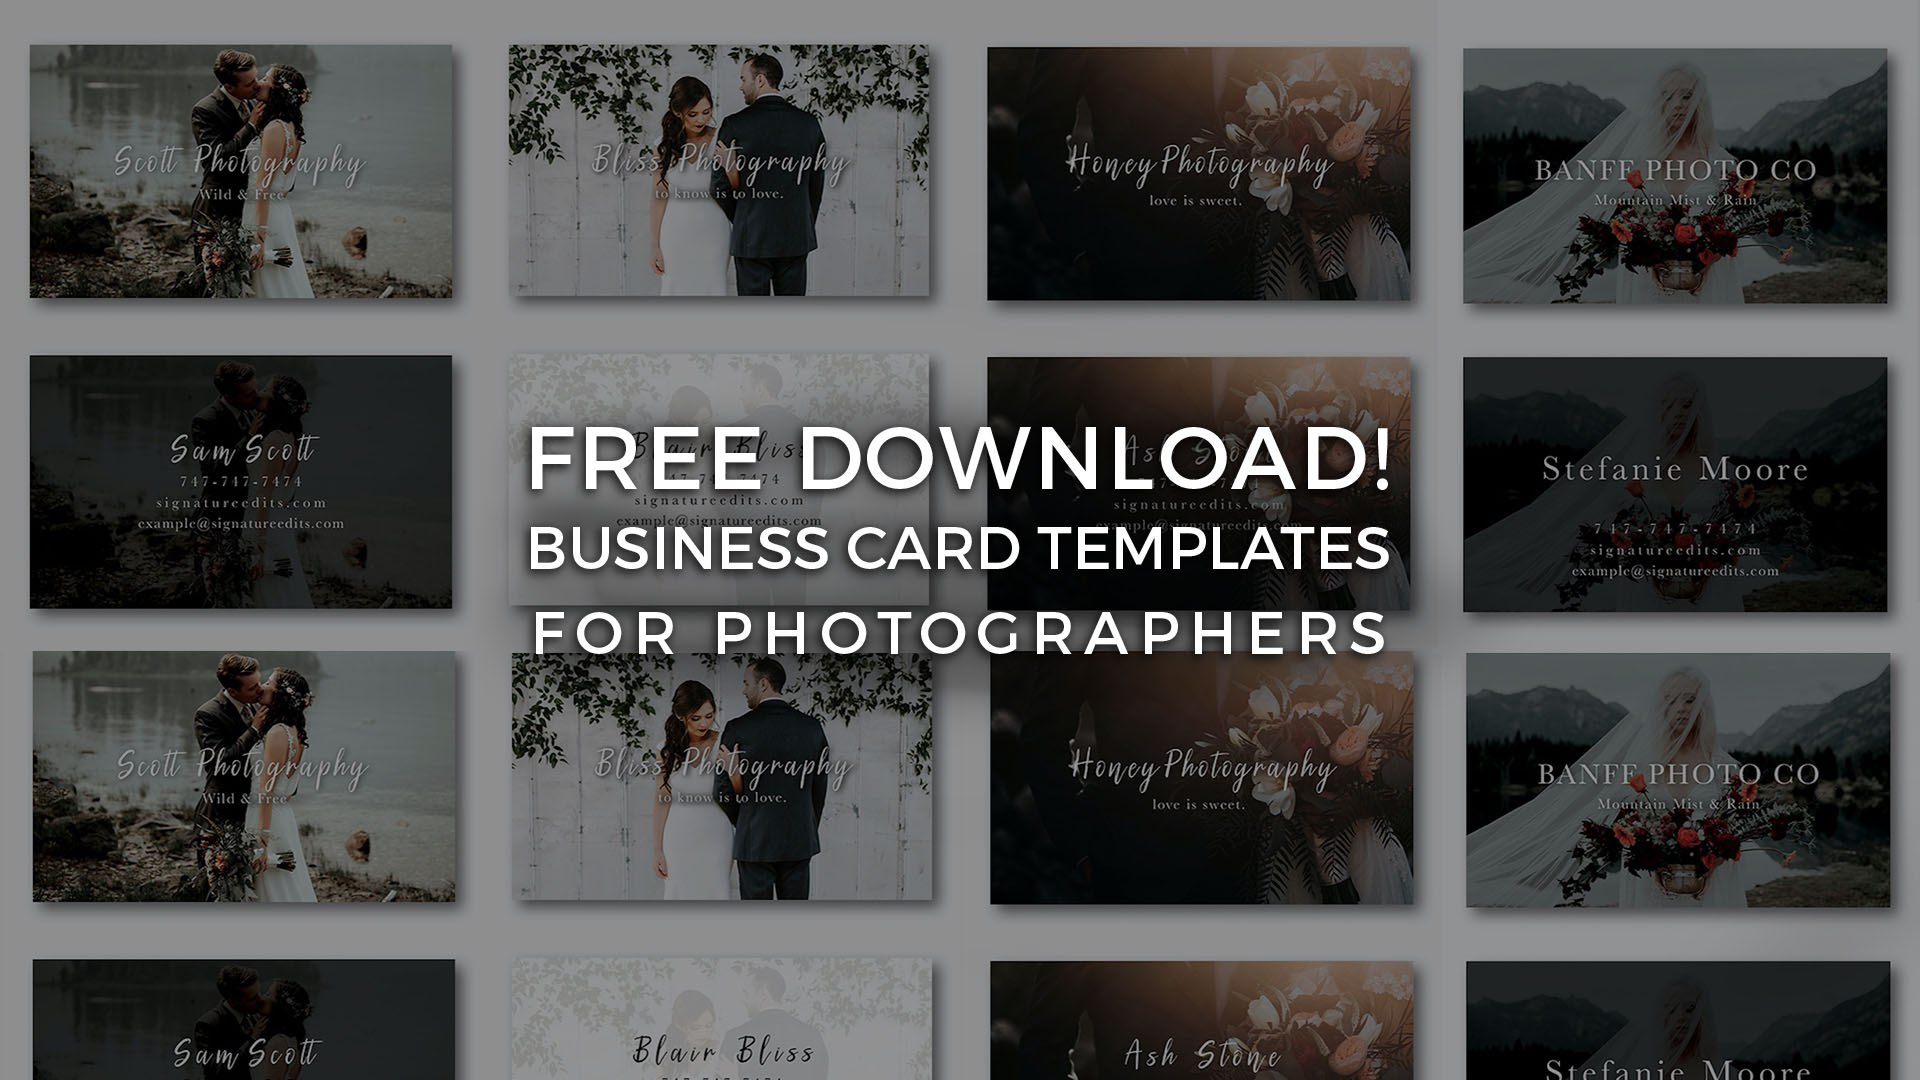 Free Photographer Business Card Templates  Signature Edits  Edit Throughout Free Business Card Templates For Photographers